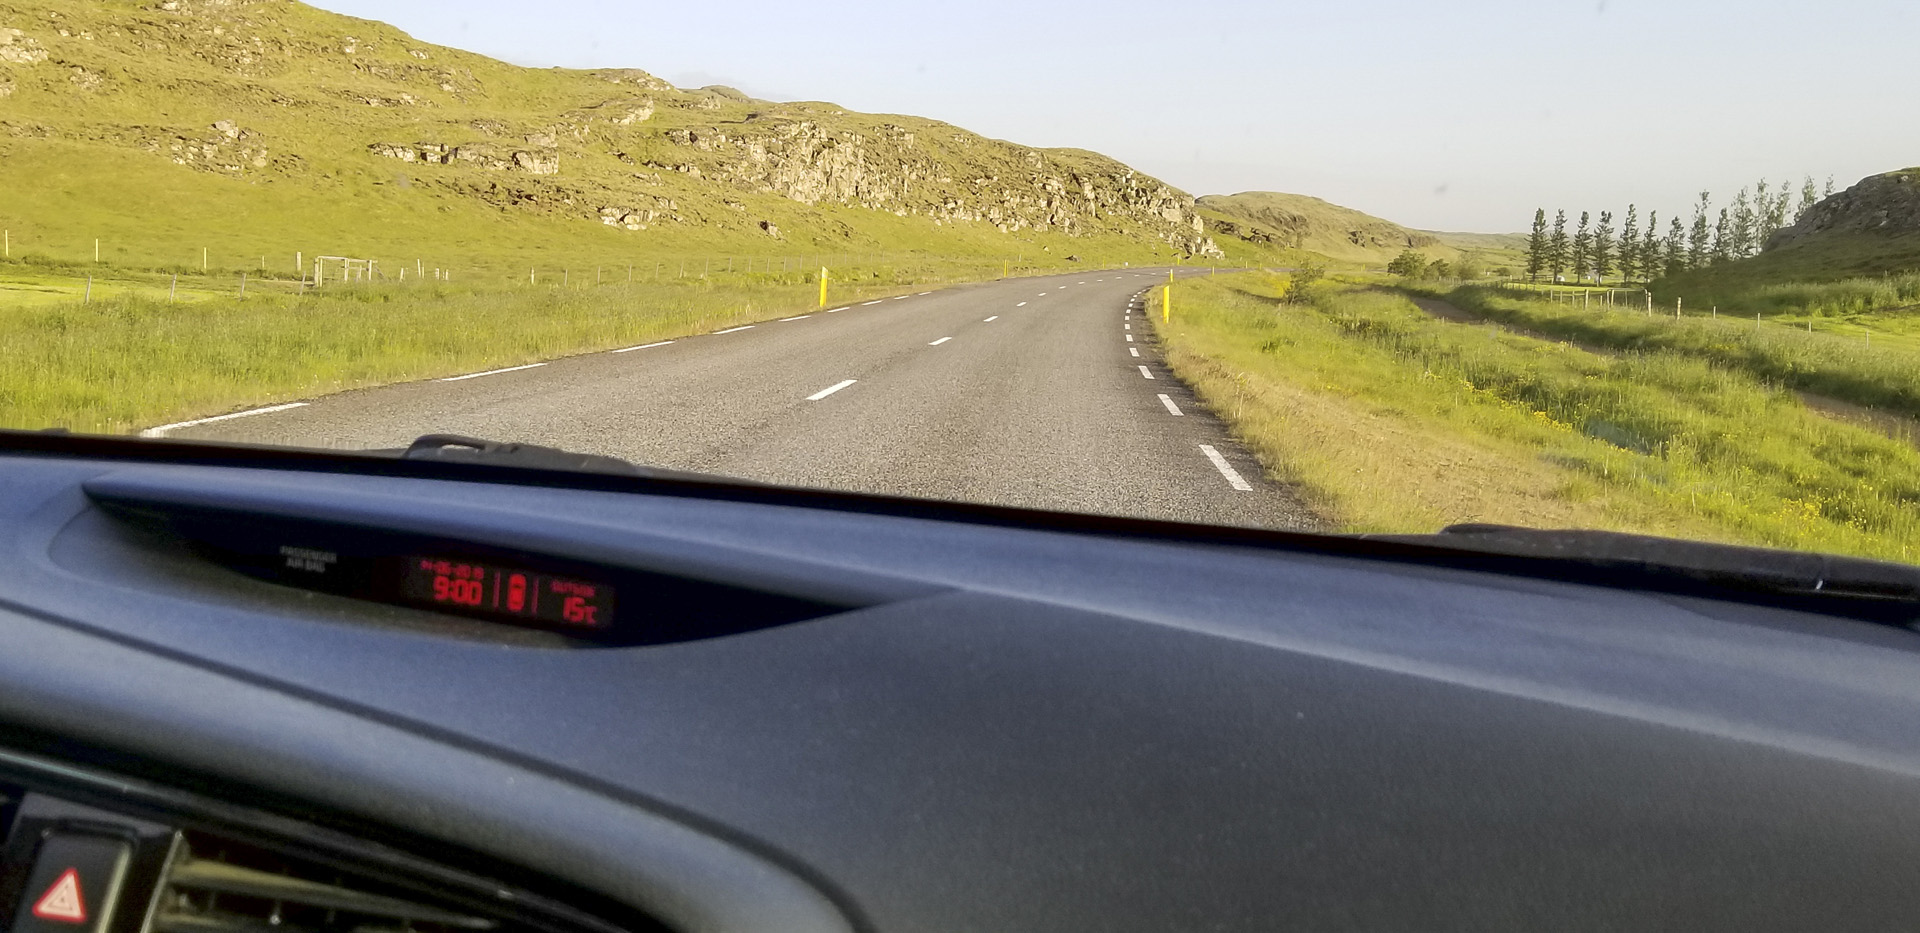 Driving down Skeiða-og Hrunamannvegur, north of Flúðir, Iceland. This picture was taken at 9:00 p.m. a week before the sumer solstice.